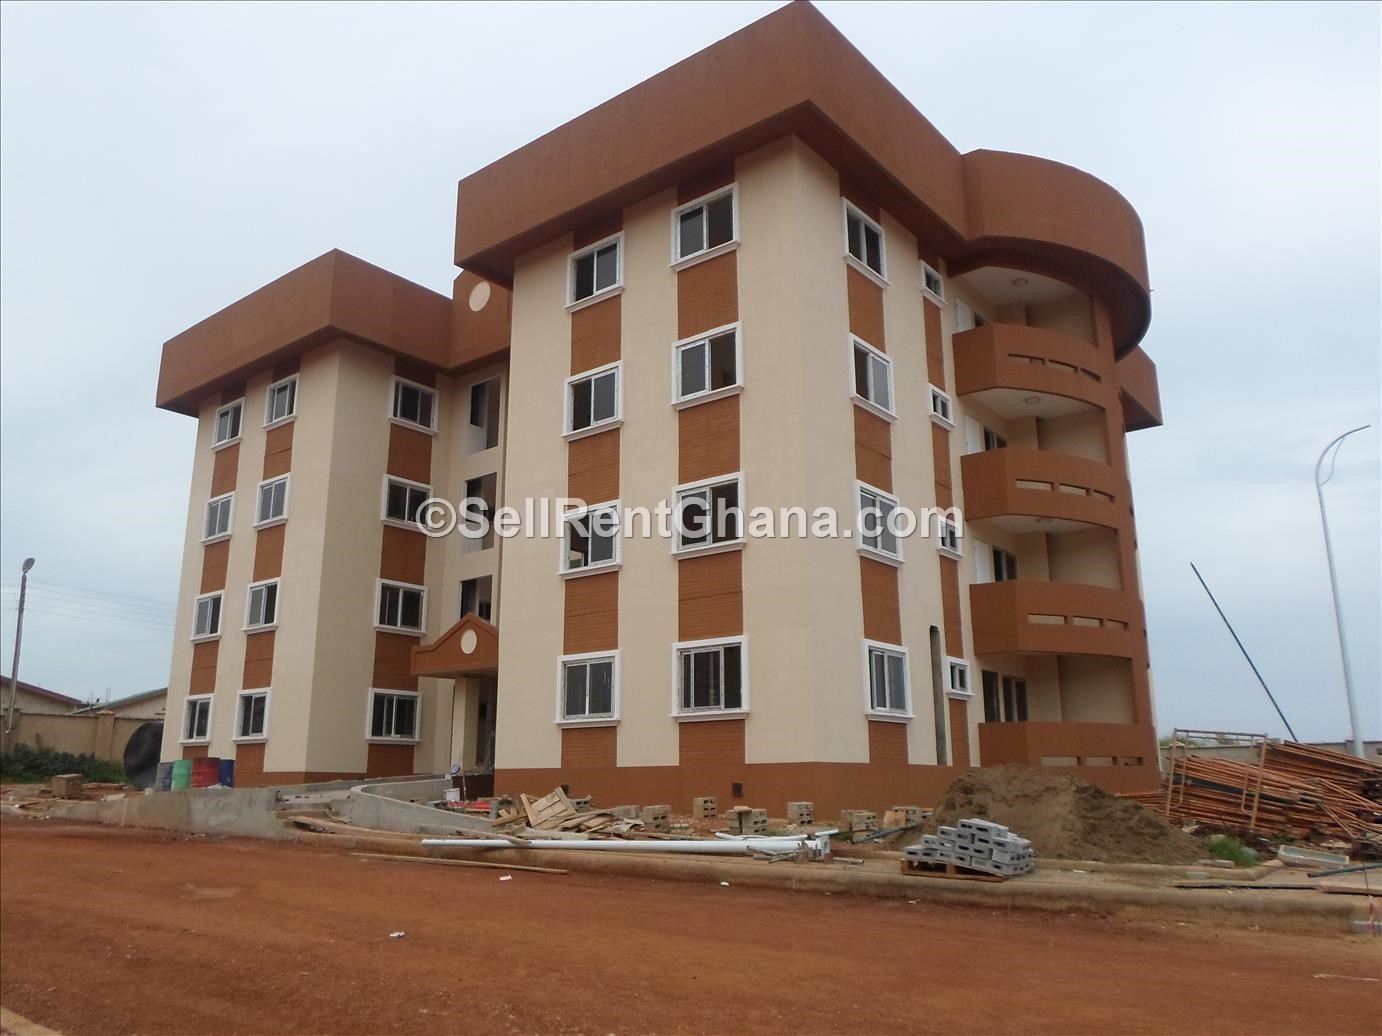 3 Bedroom Apartment Houses For Sale Tema Sellrent Ghana